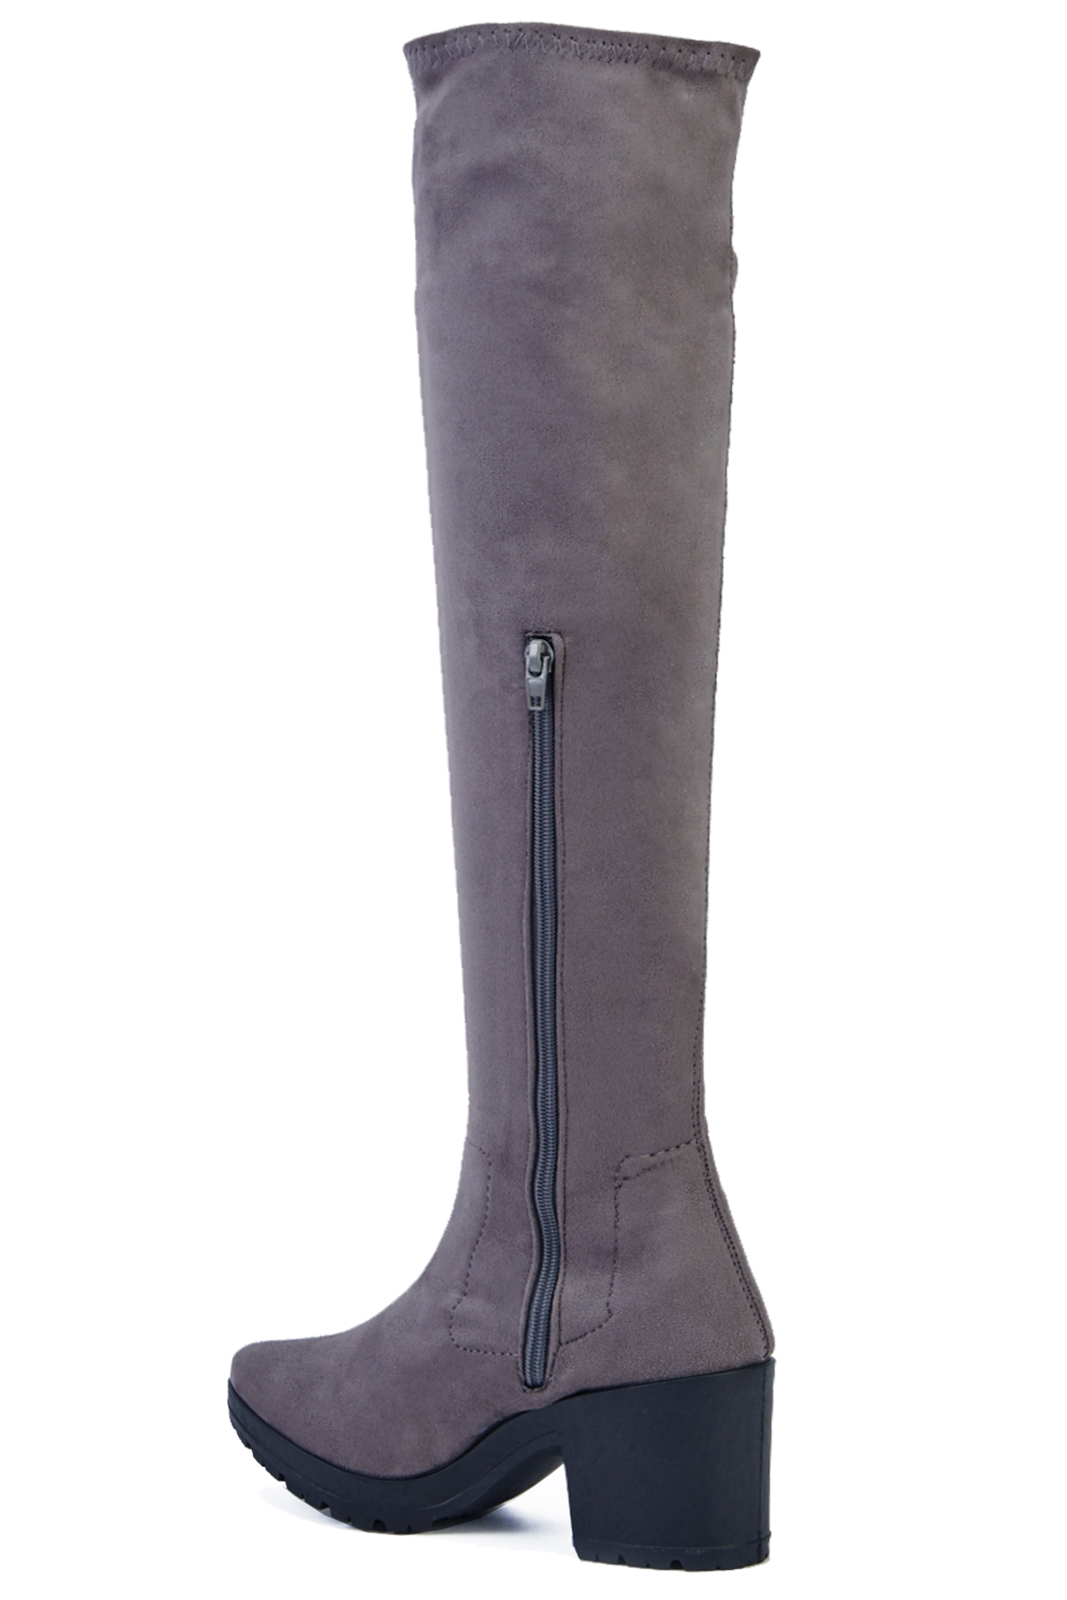 LADIES-GREY-STRETCH-OVER-THE-KNEE-HIGH-ZIP-UP-PLATFORM-BOOTS-SHOES-SIZES-3-9 thumbnail 7